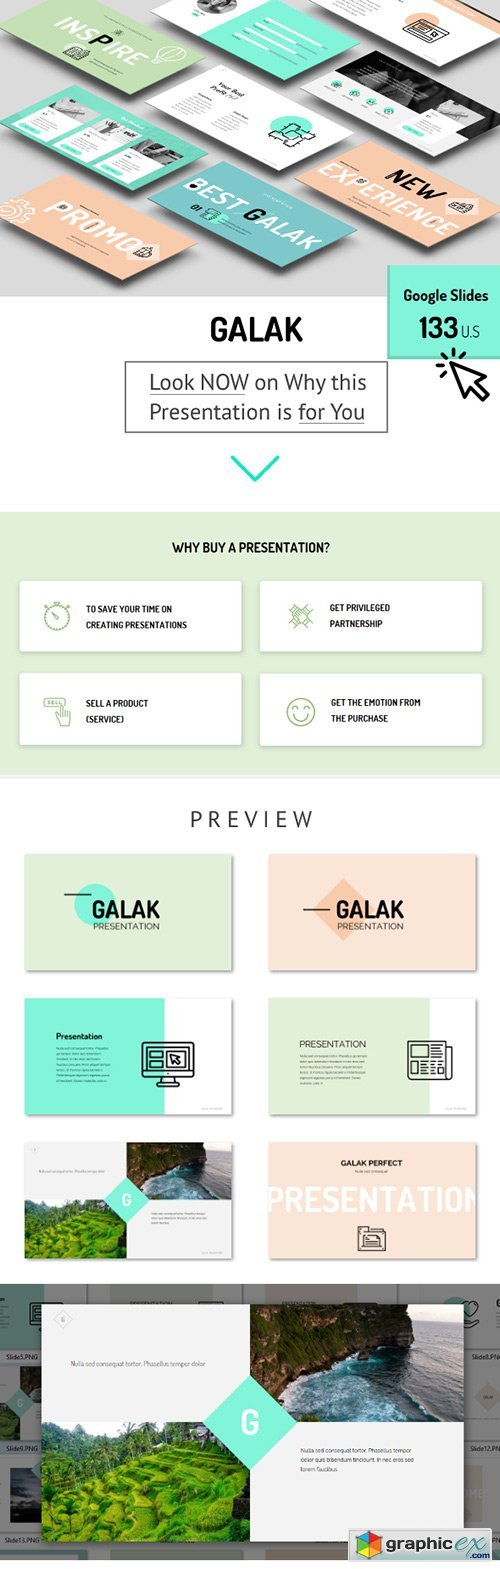 GALAK - Google Slides Presentation Template